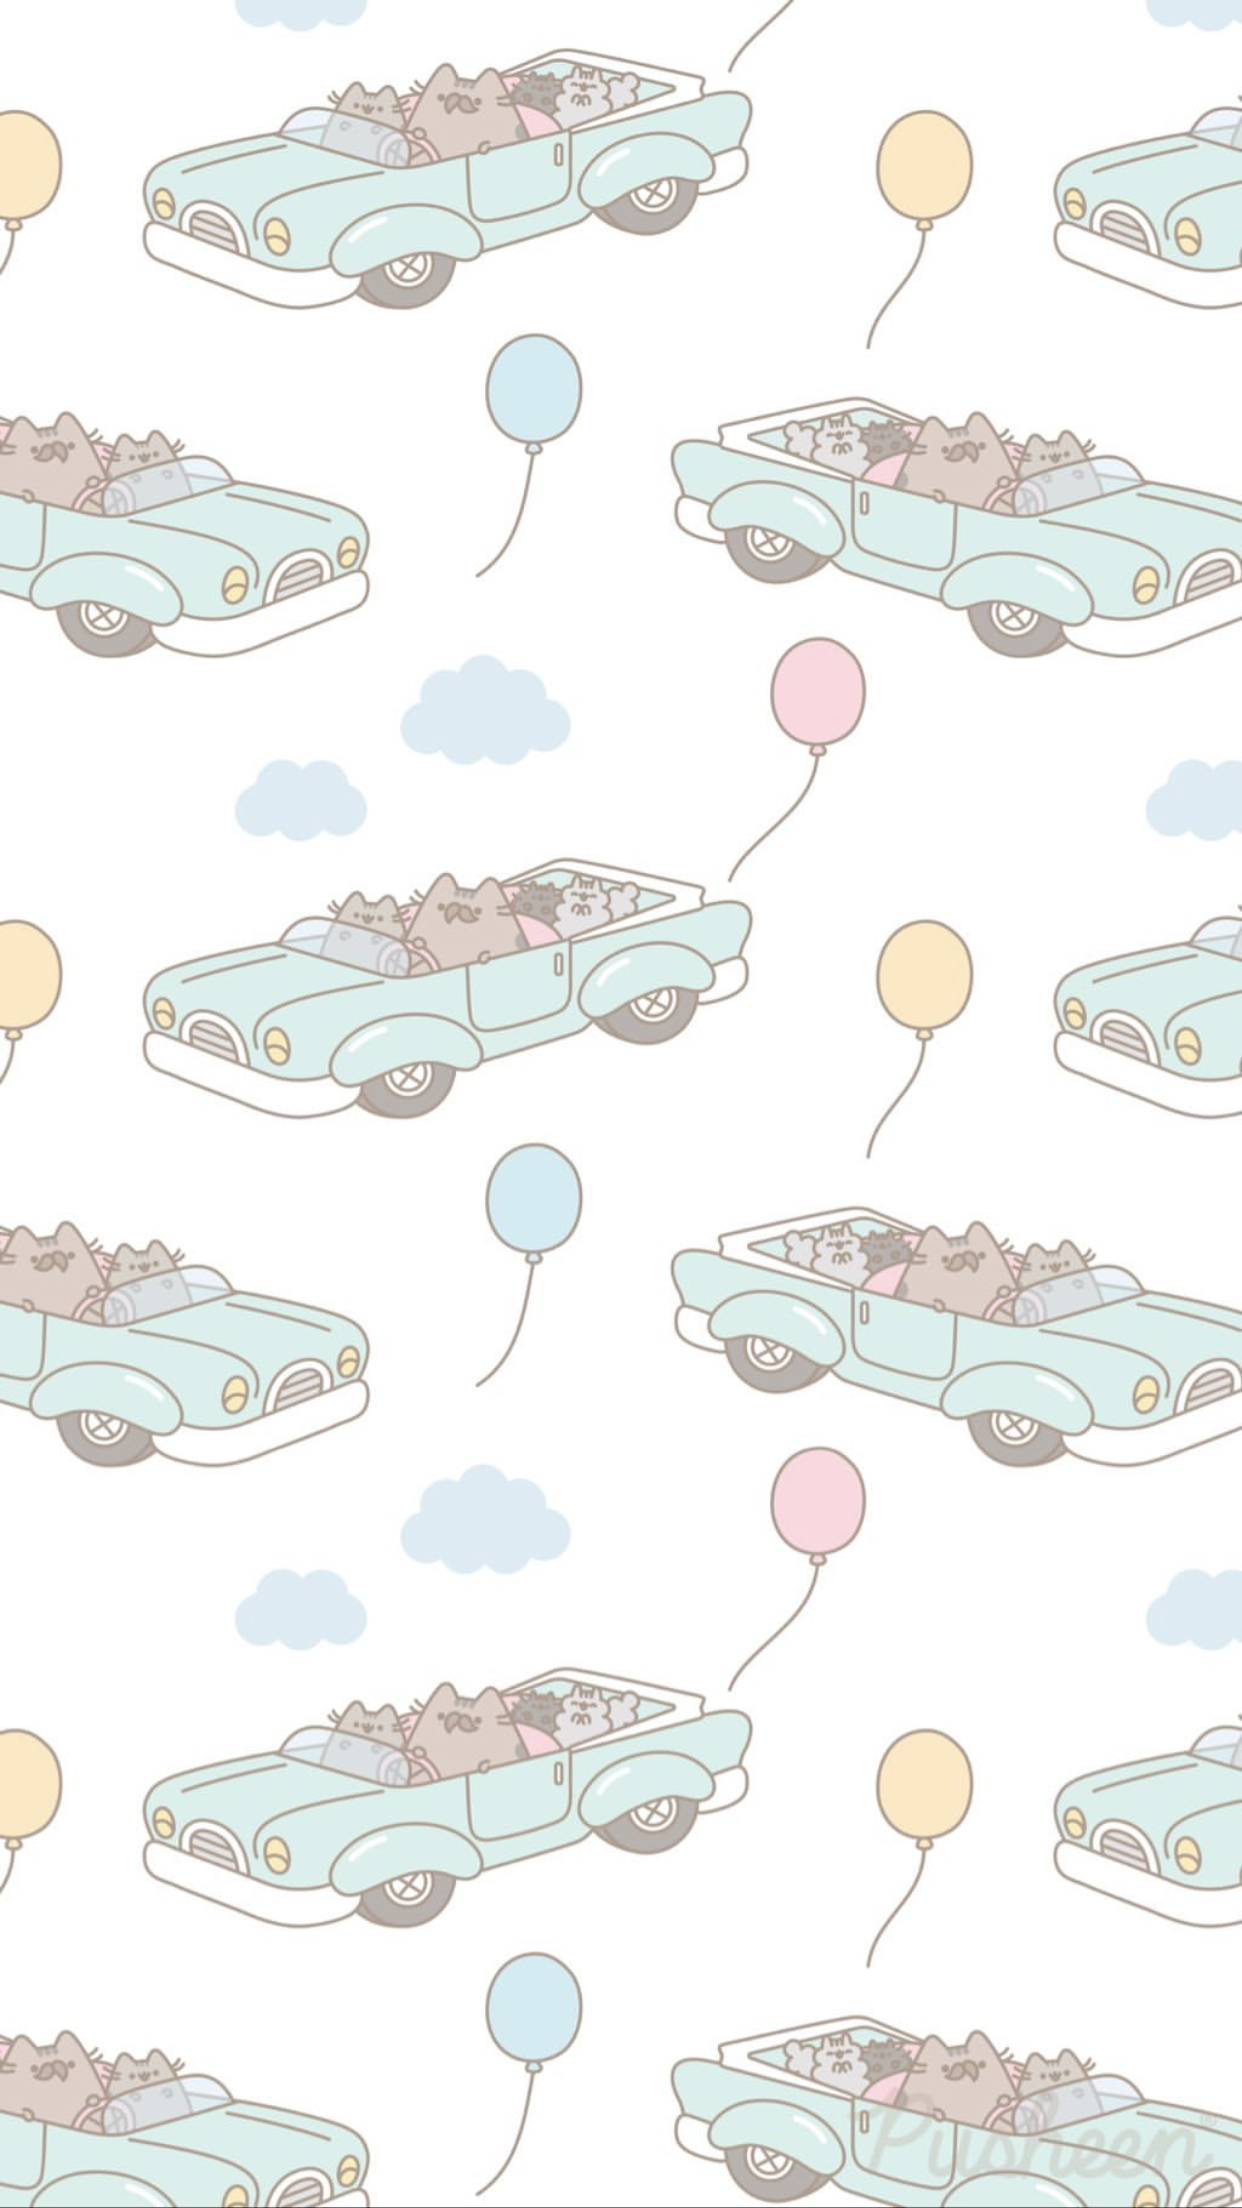 Pusheen the cat iphone wallpaper Fathers Day With images 1242x2208